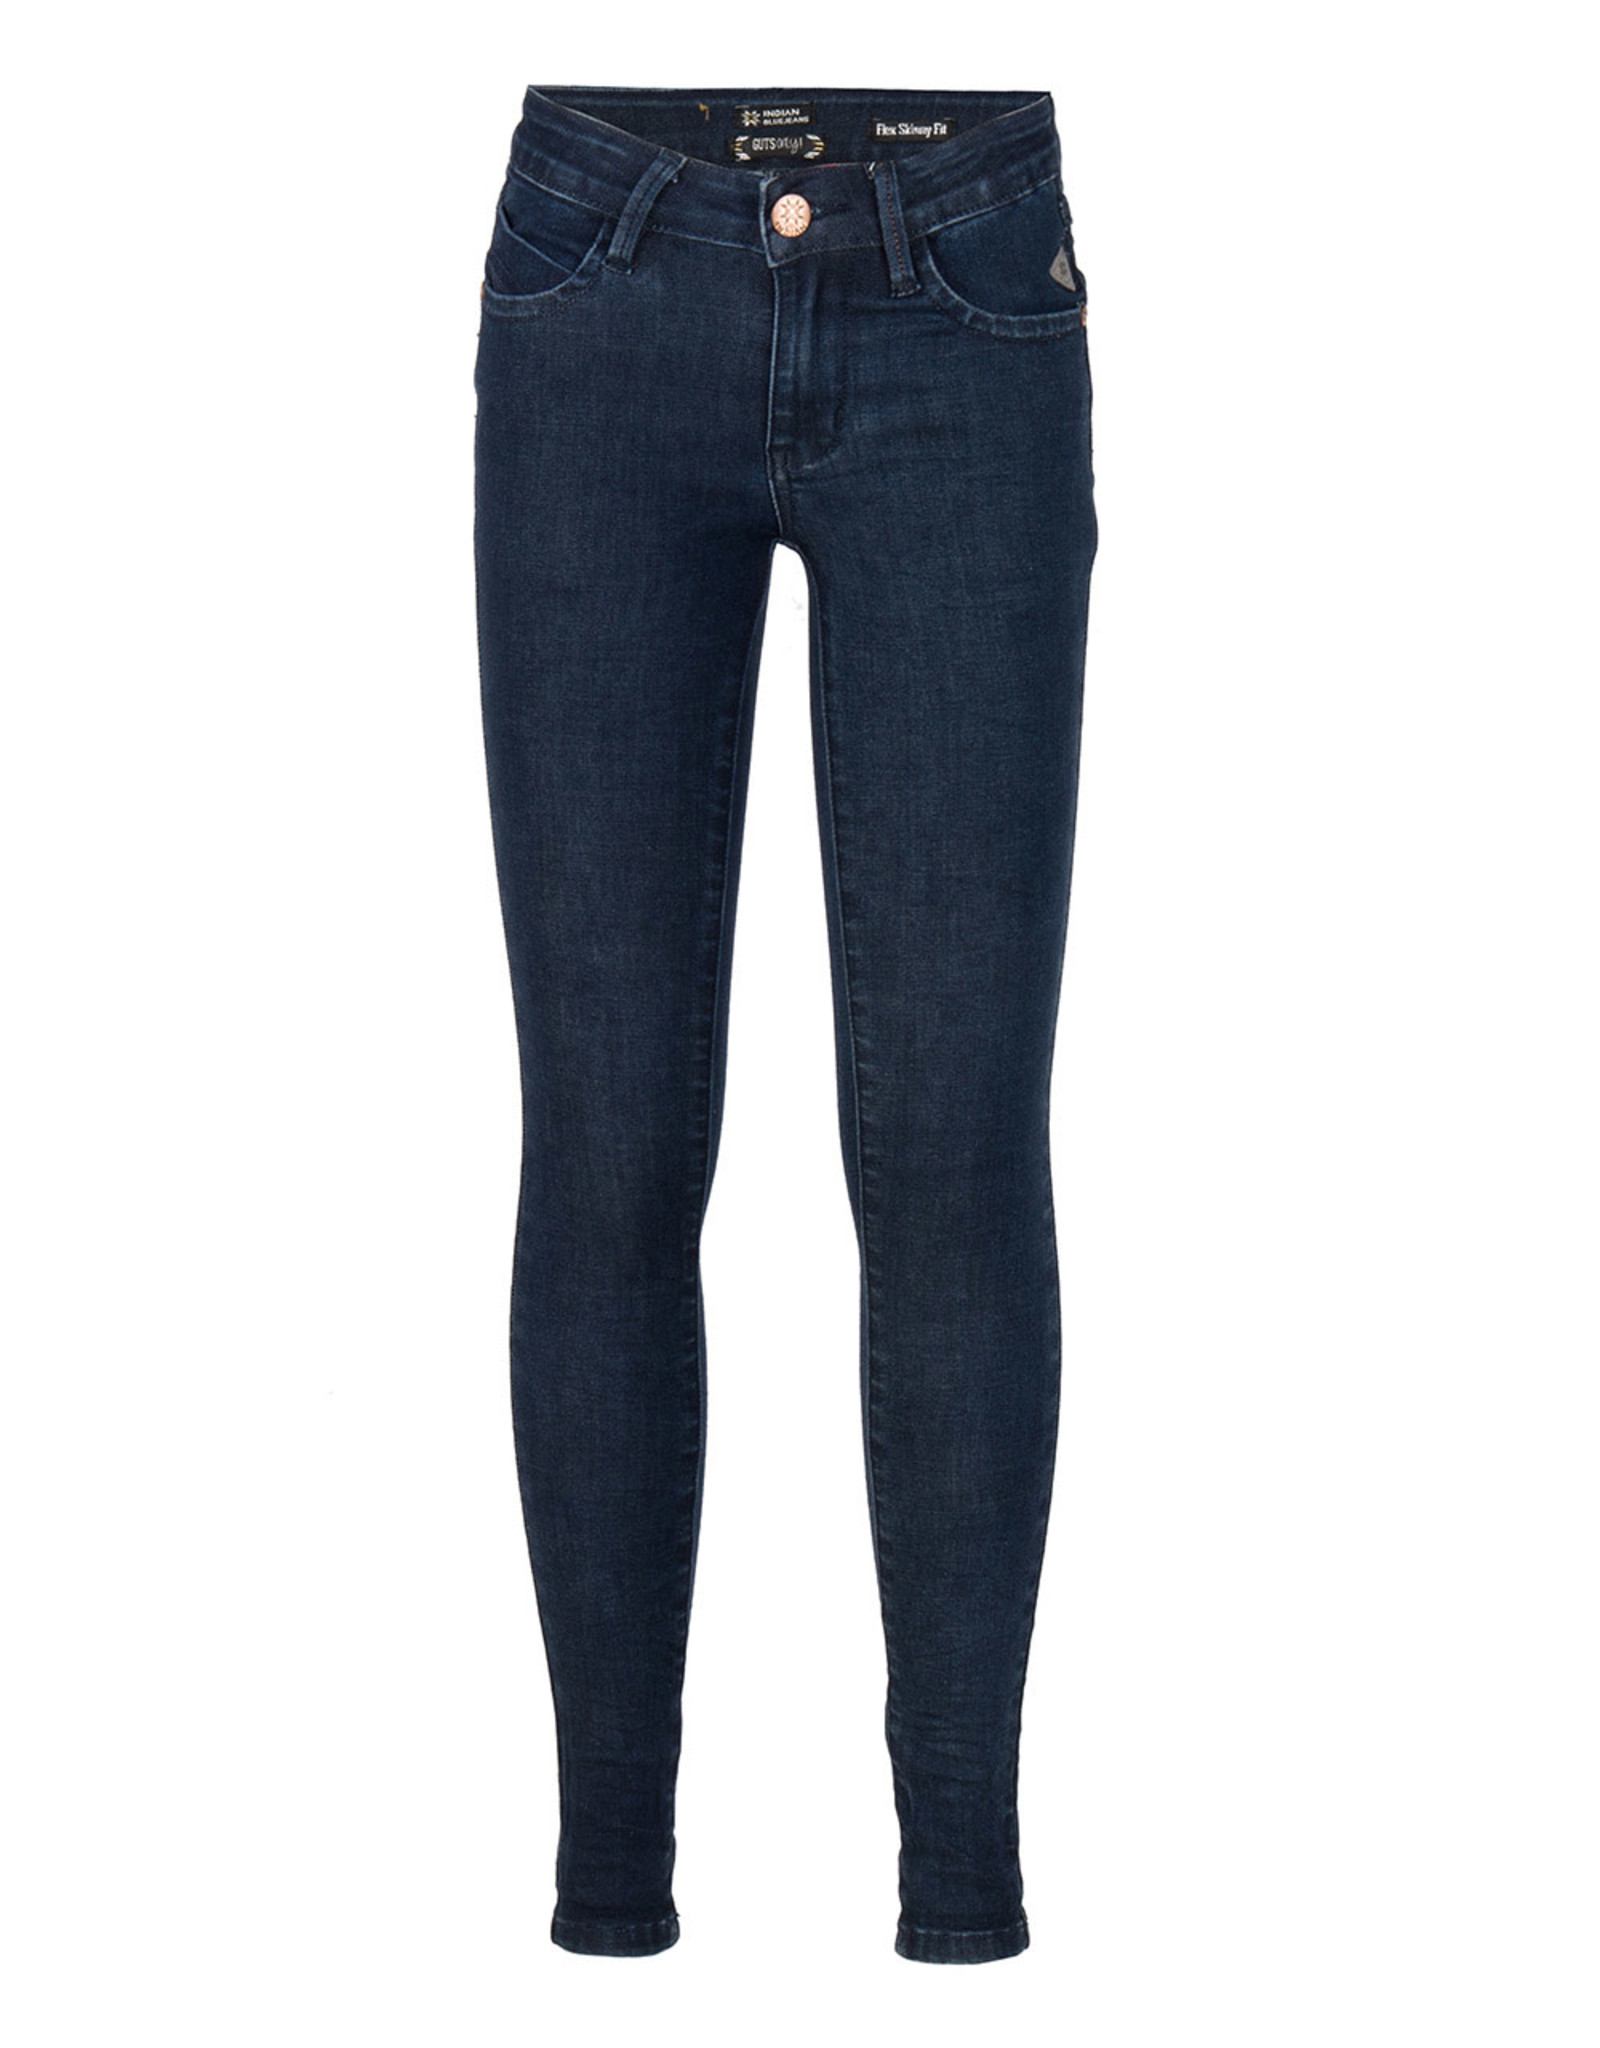 Indian Blue jeans IBG22-2160